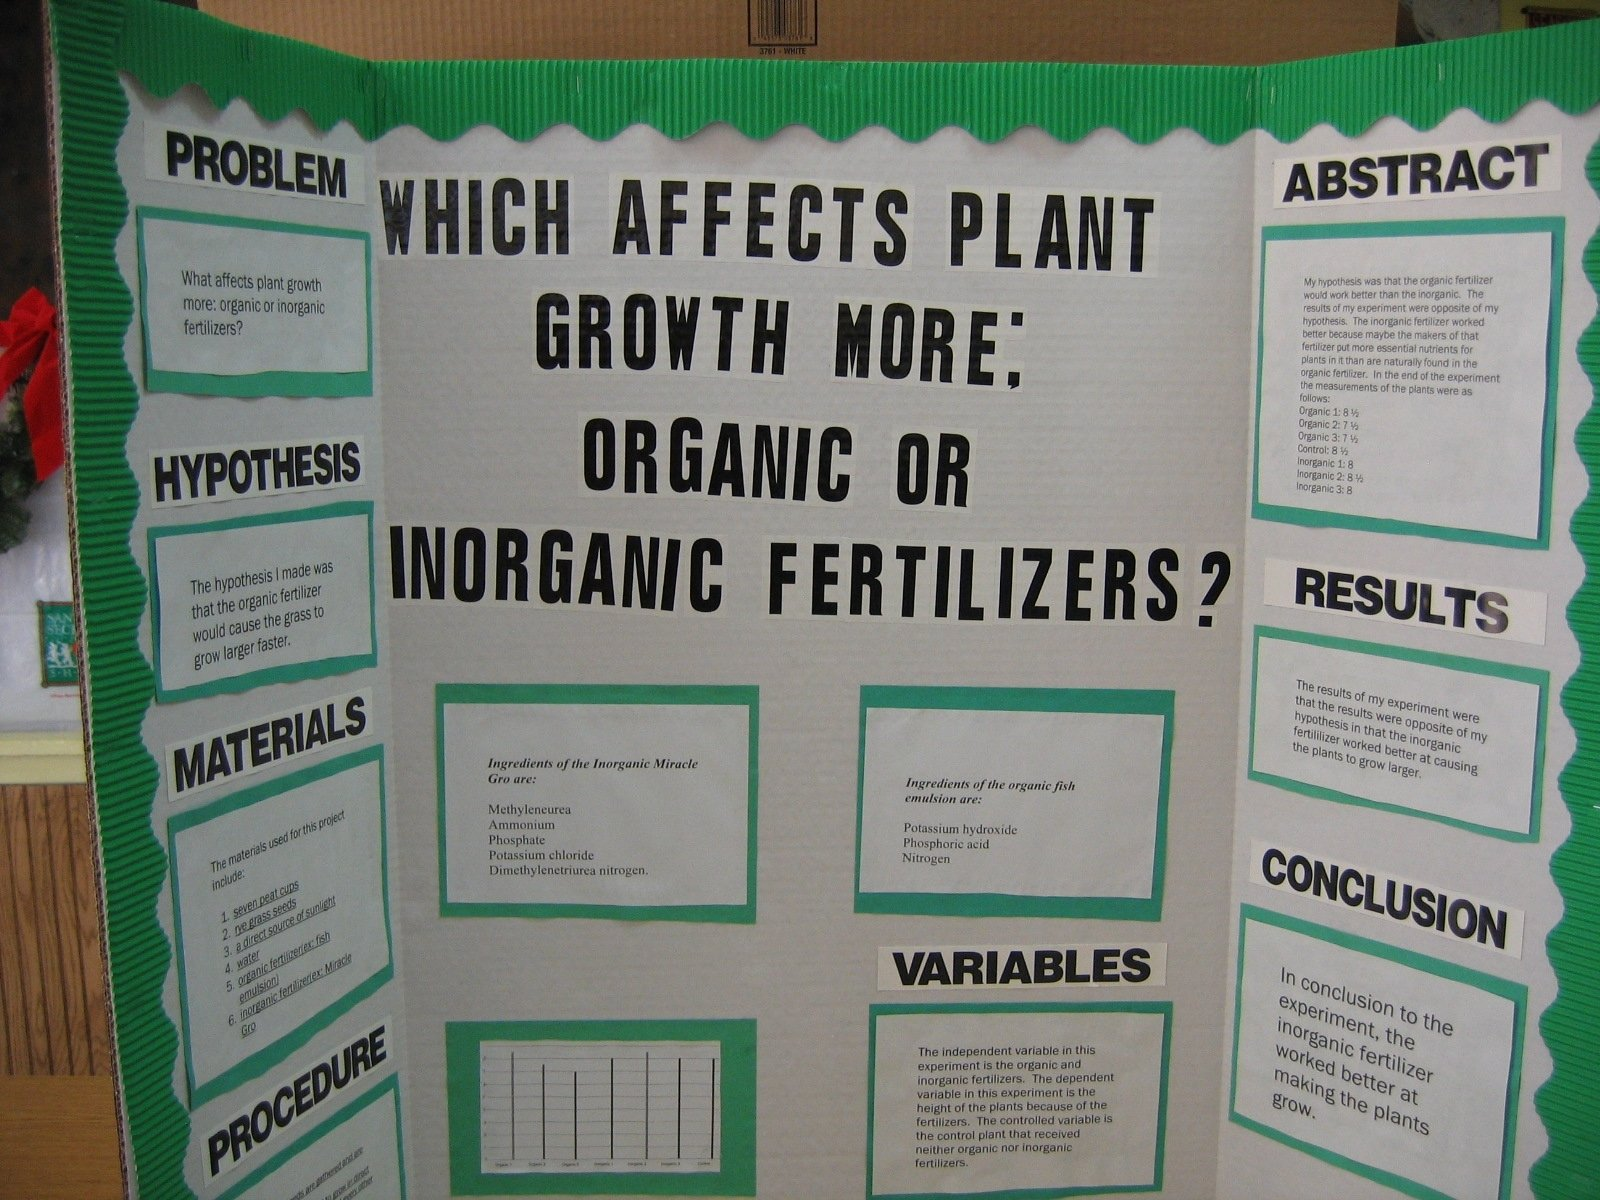 10 Fantastic Plant Science Fair Project Ideas science fair projects 13 wide wallpaper 1600x1200 science 2020